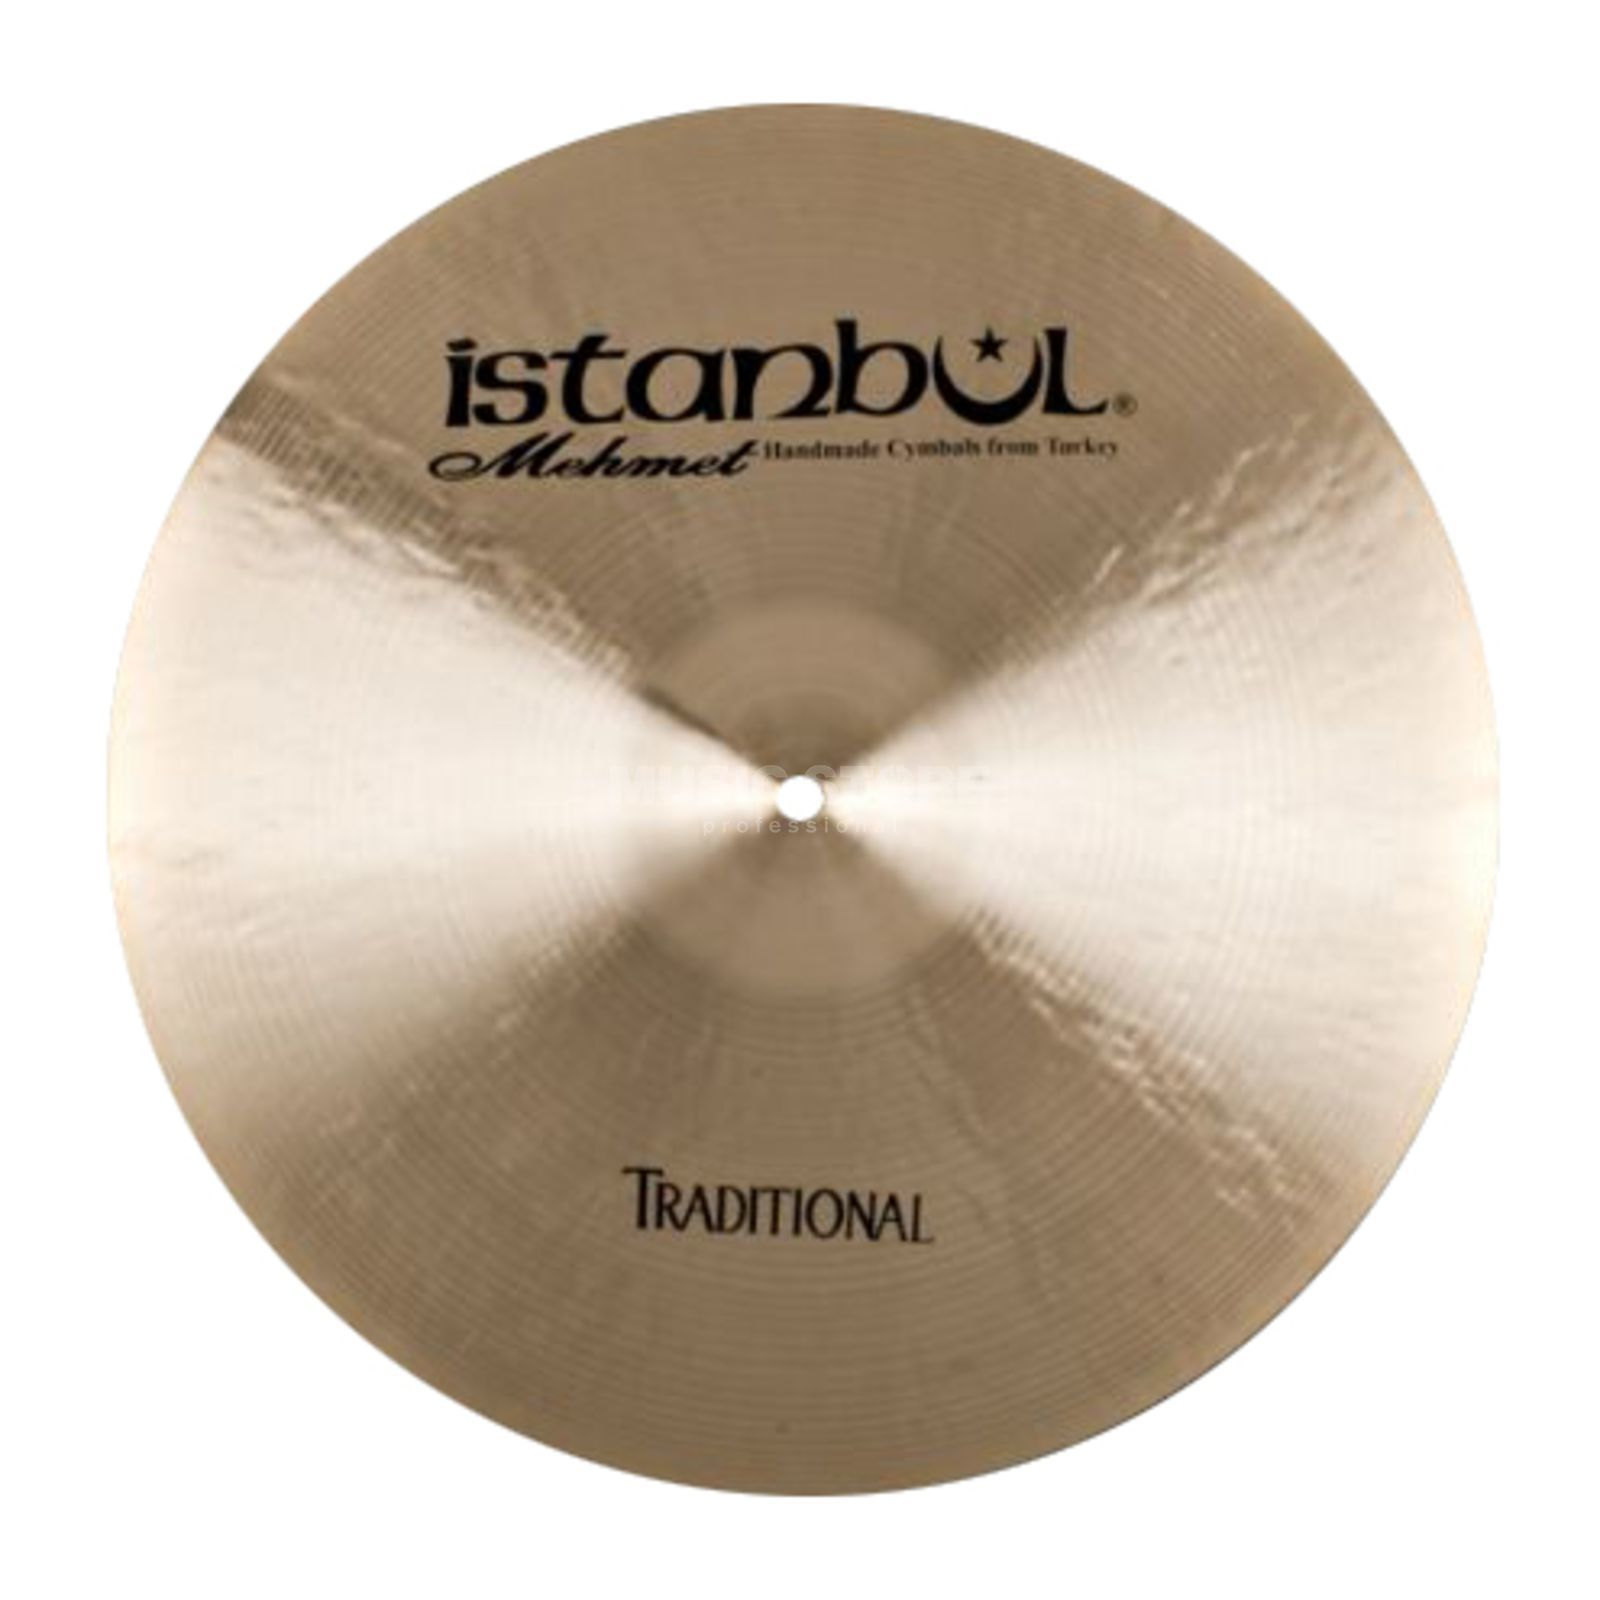 "Istanbul Traditional Medium Crash 14"", CM15 Изображение товара"